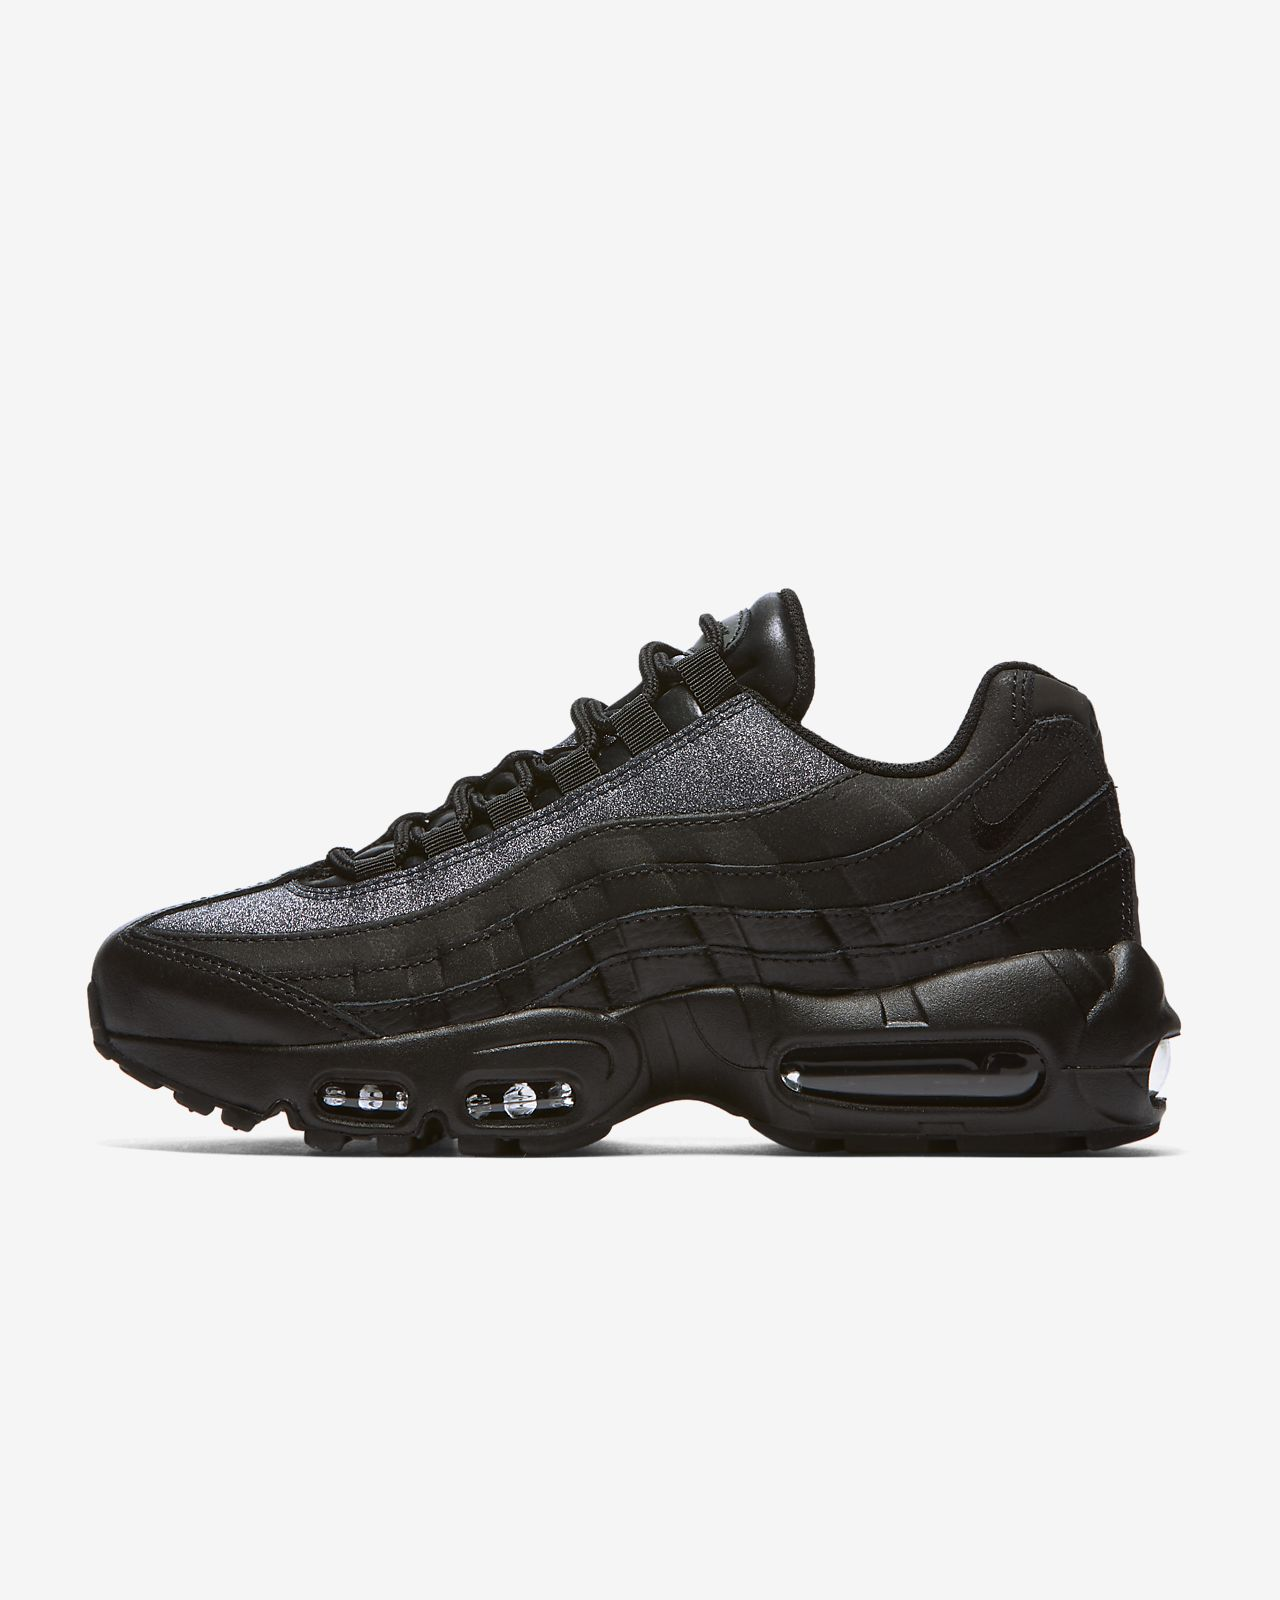 uk availability b0364 82698 ... Nike Air Max 95 SE Glitter-sko til kvinder